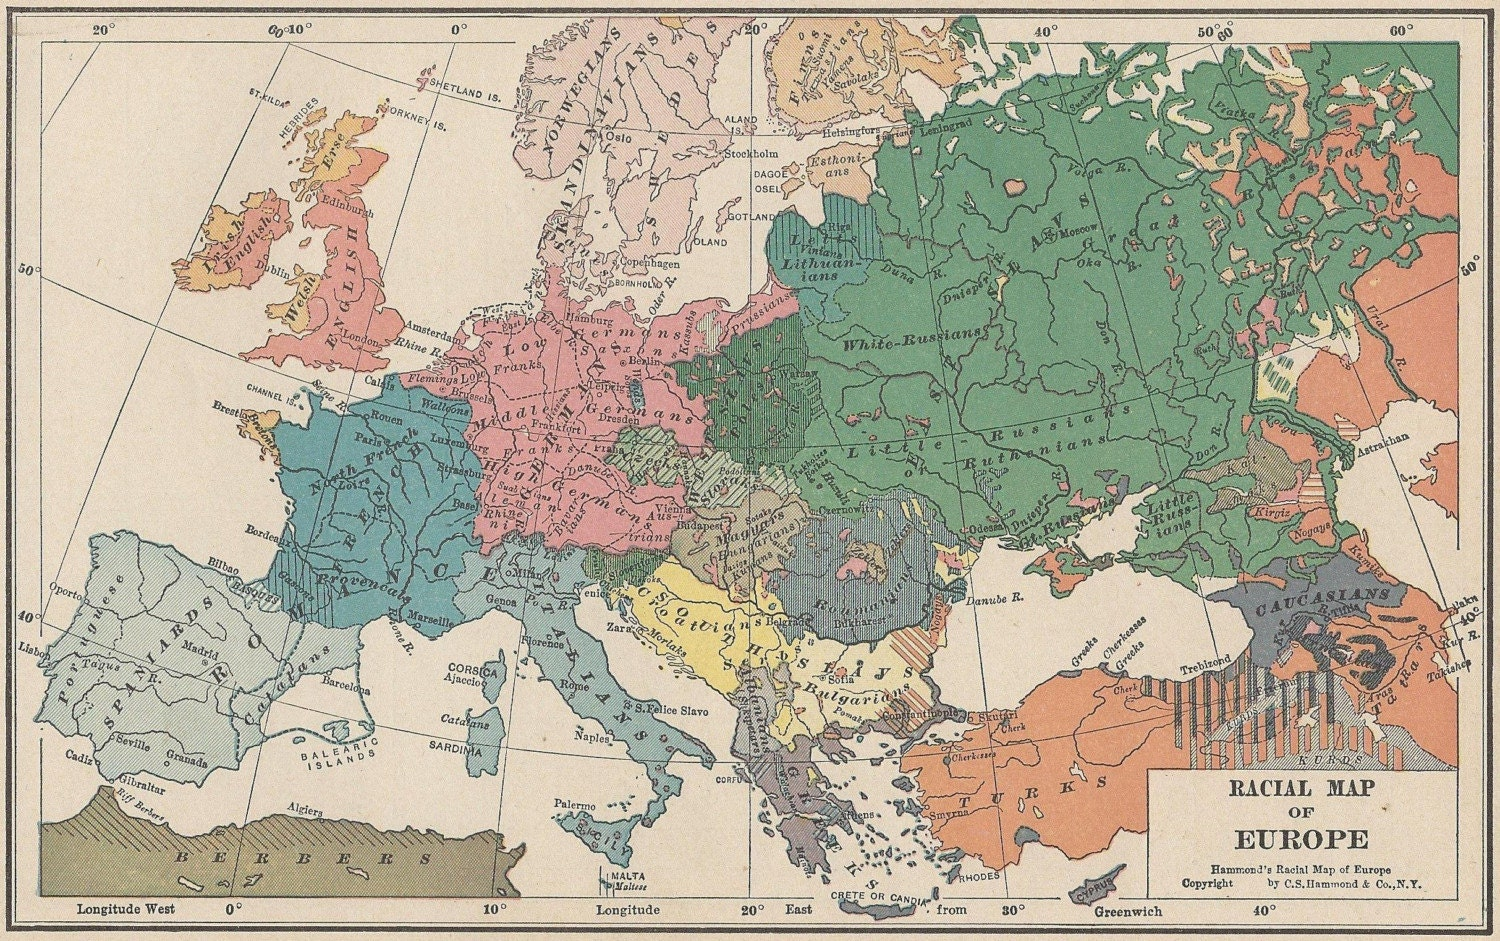 Vintage 1927 Map, RACIAL MAP OF EUROPE